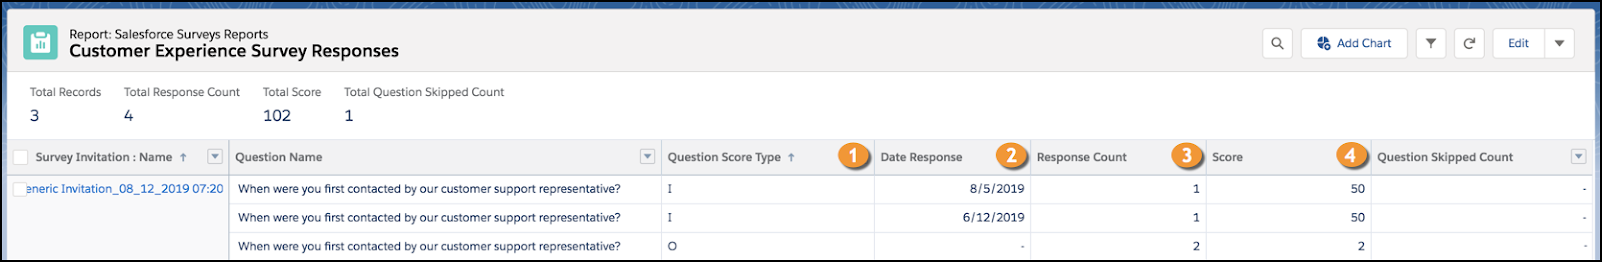 A sample report containing responses for date question type.